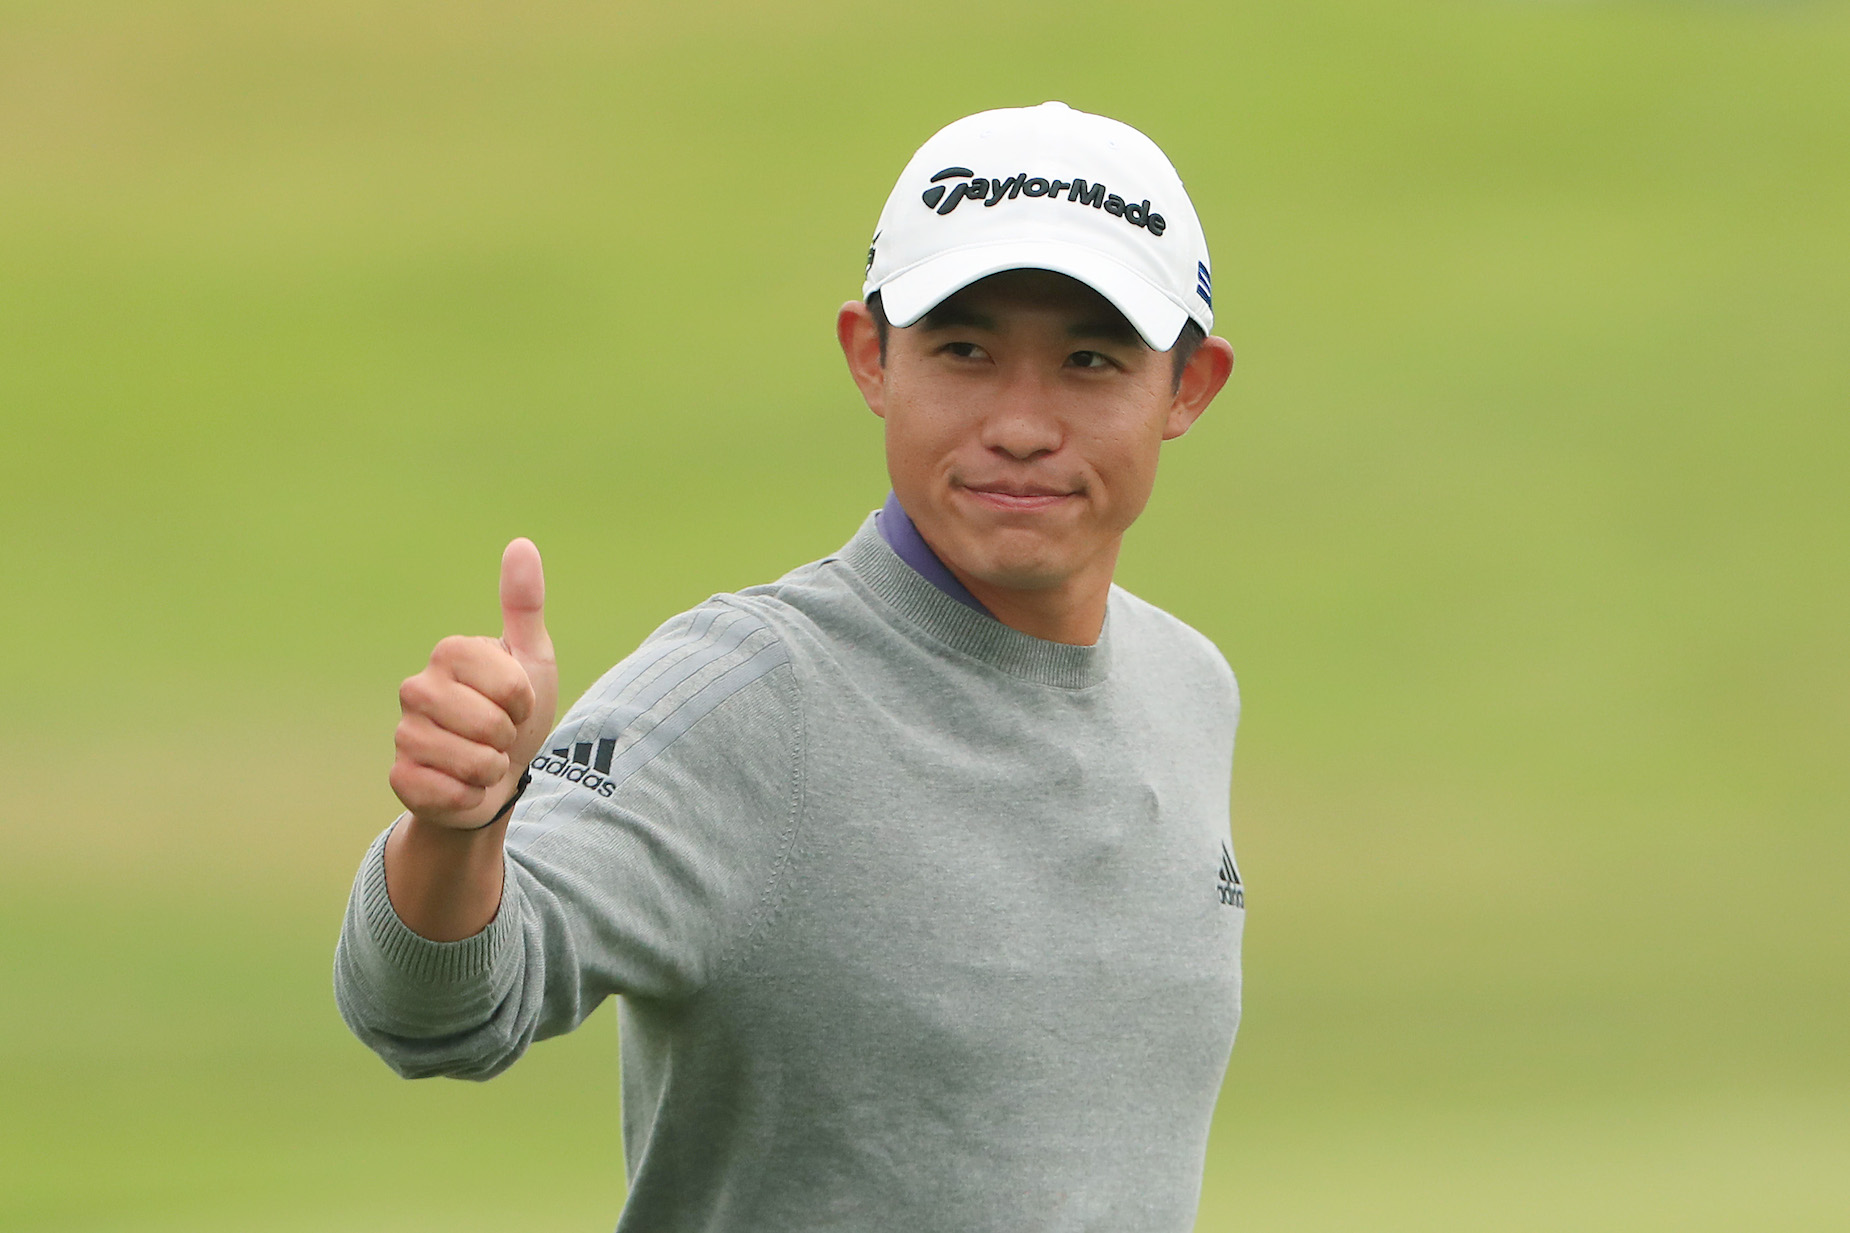 After winning the PGA Championship, Collin Morikawa added almost $2 million to his bank account.